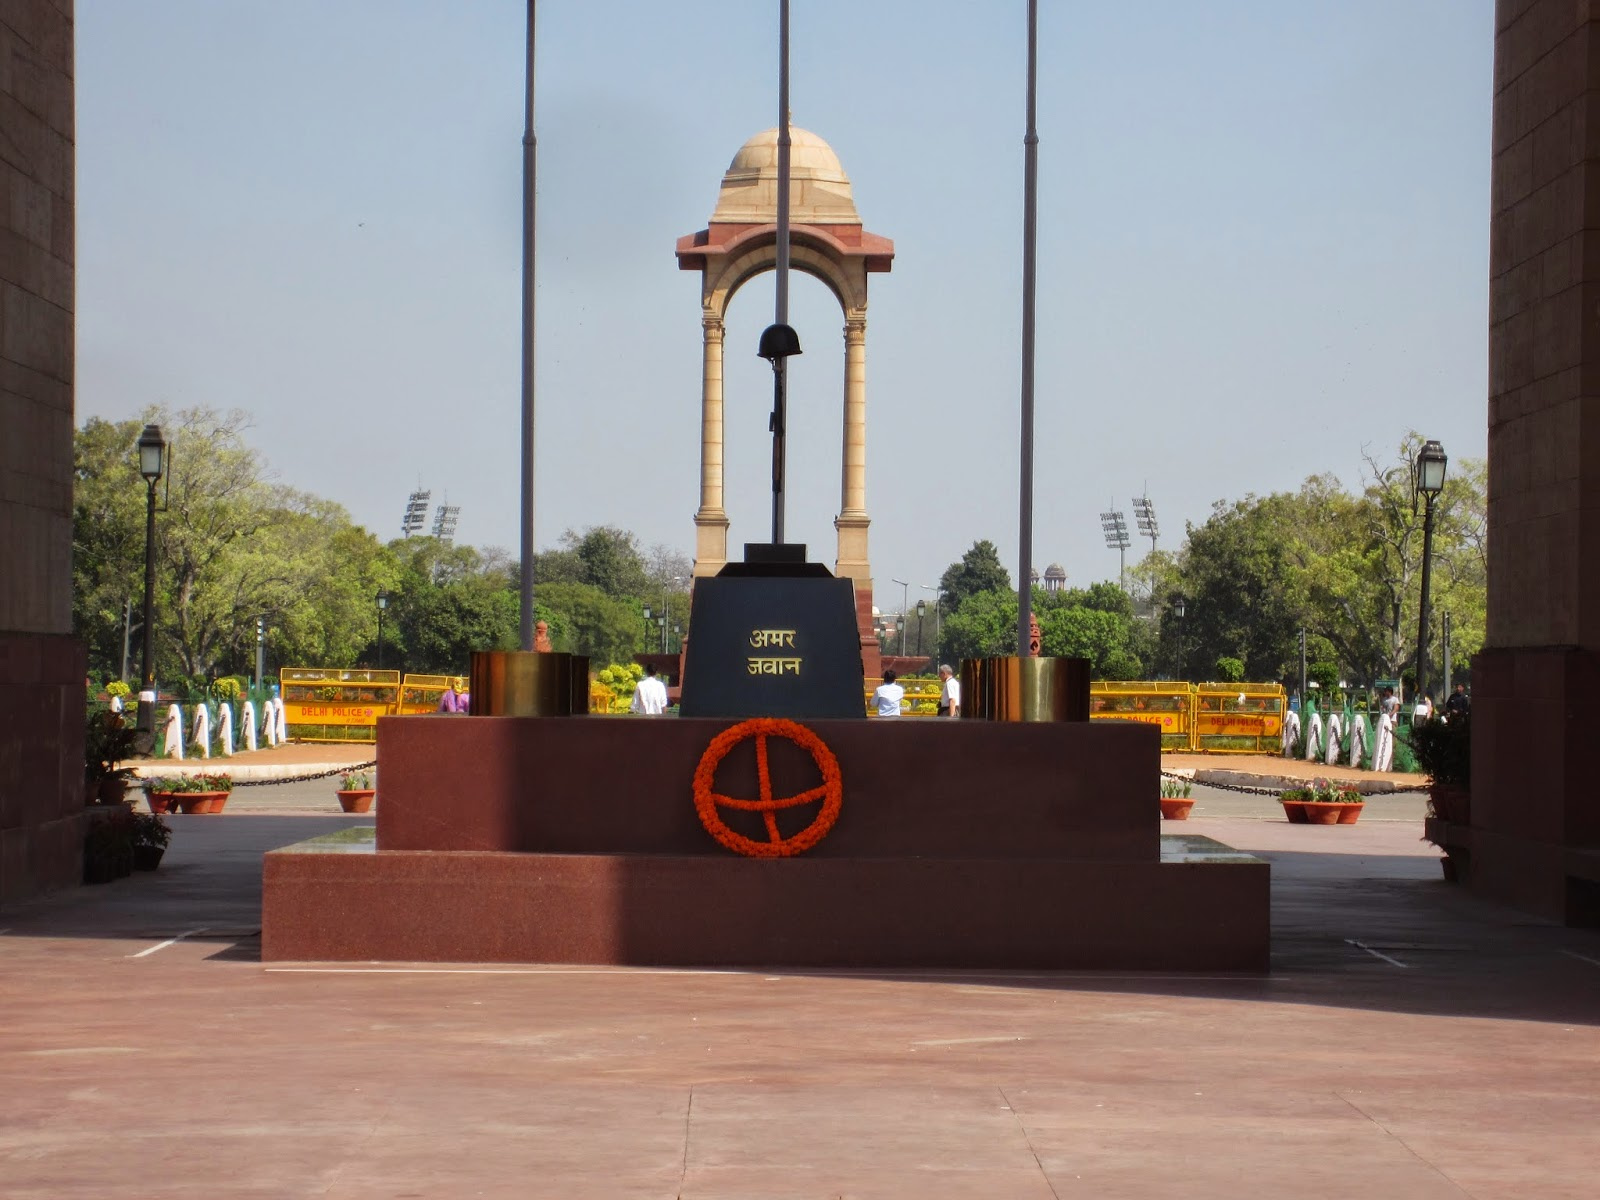 my world gate delhi a photo essay amar jawan jyoti was added after got independence the flame under the arch reminds of the iers who laid their lives in indo pak war of